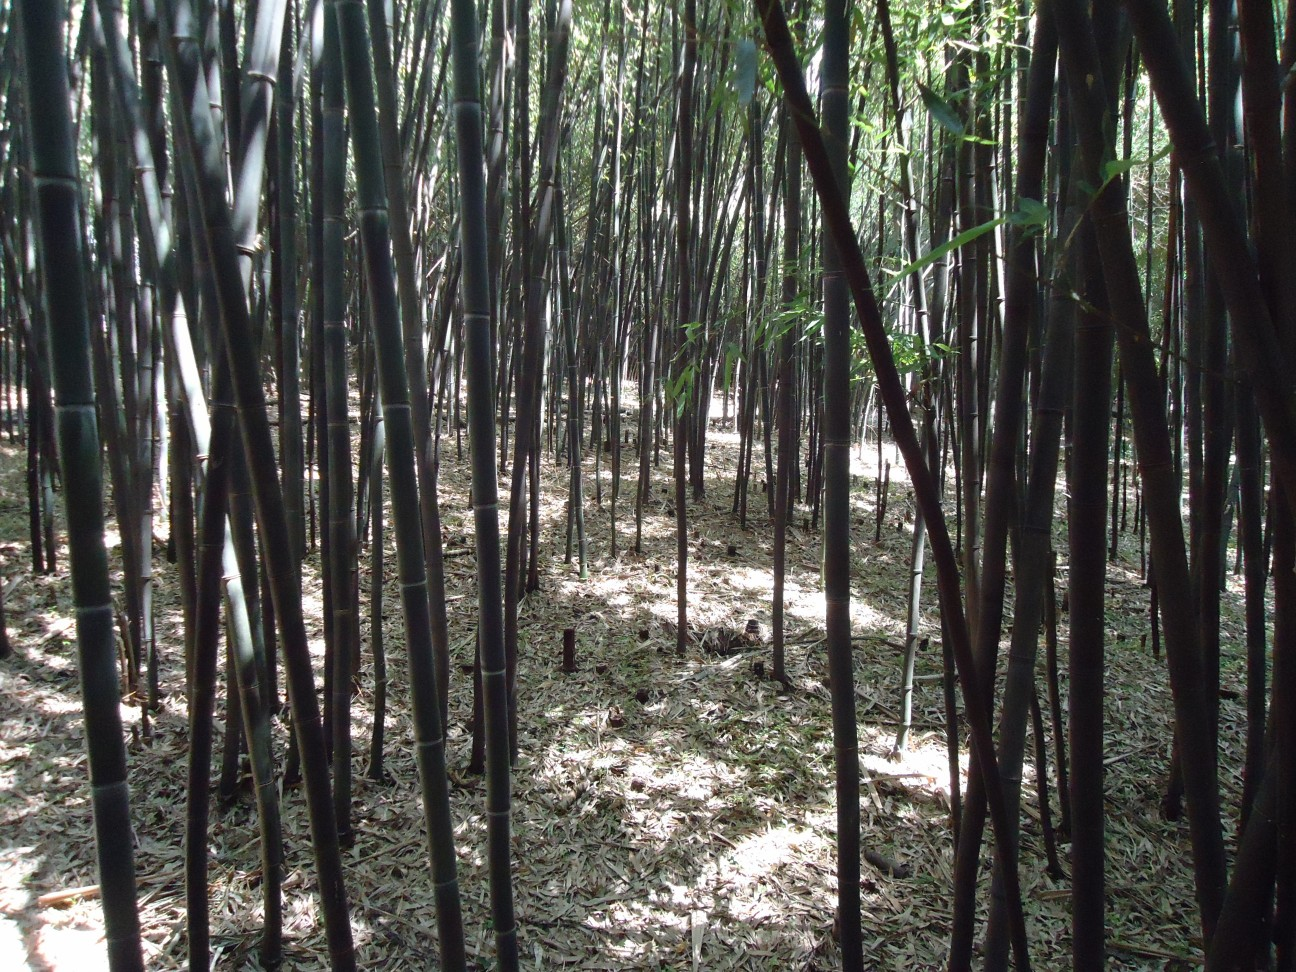 Bamboo forest in New Jersey